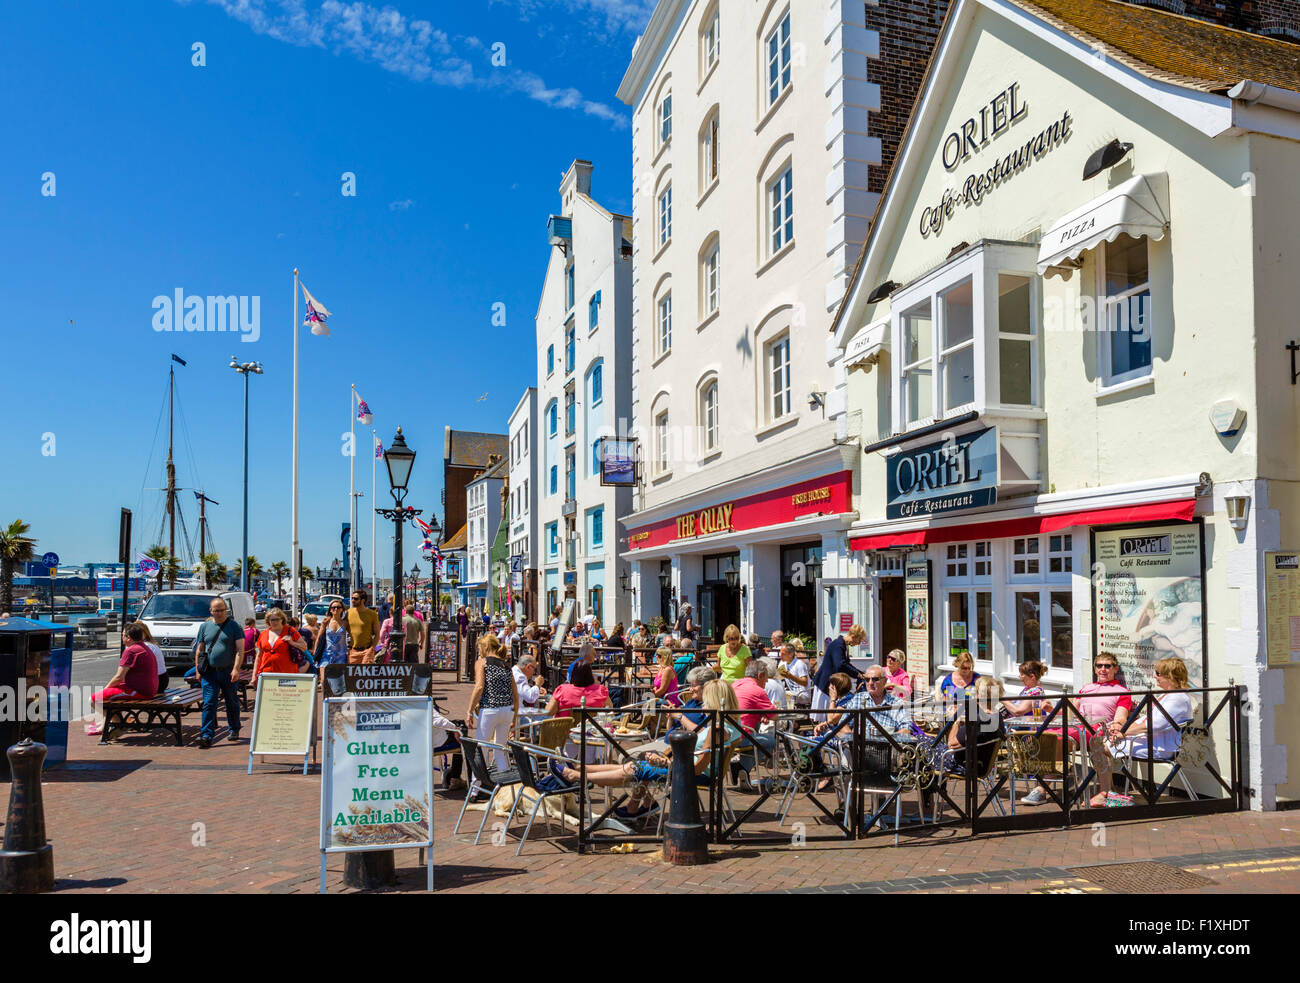 People sitting outside The Quay pub and Oriel Cafe on The Quay in Poole, Dorset, England, UK - Stock Image